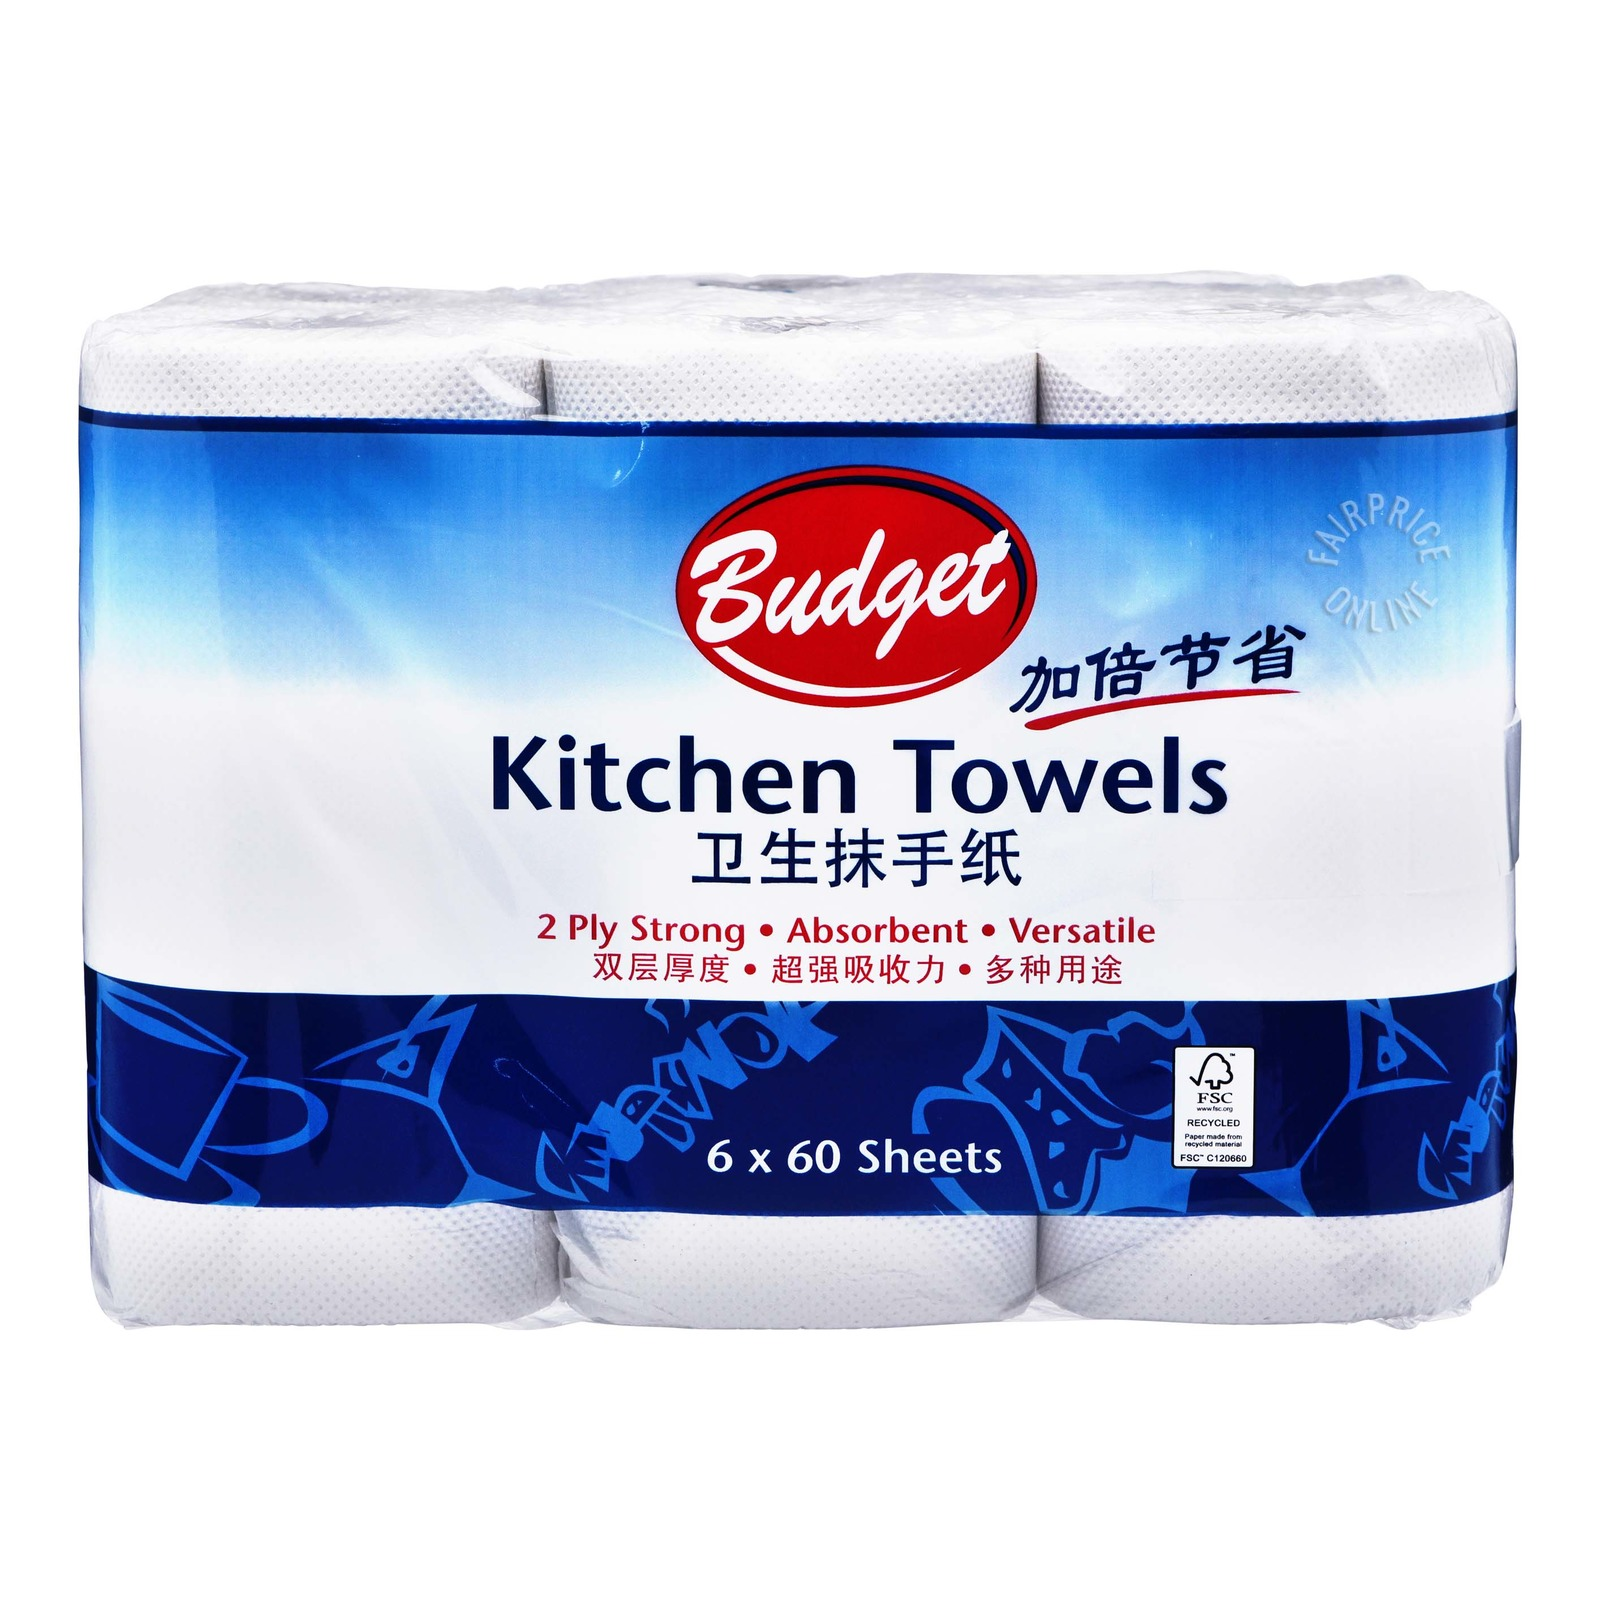 Budget Kitchen Towel